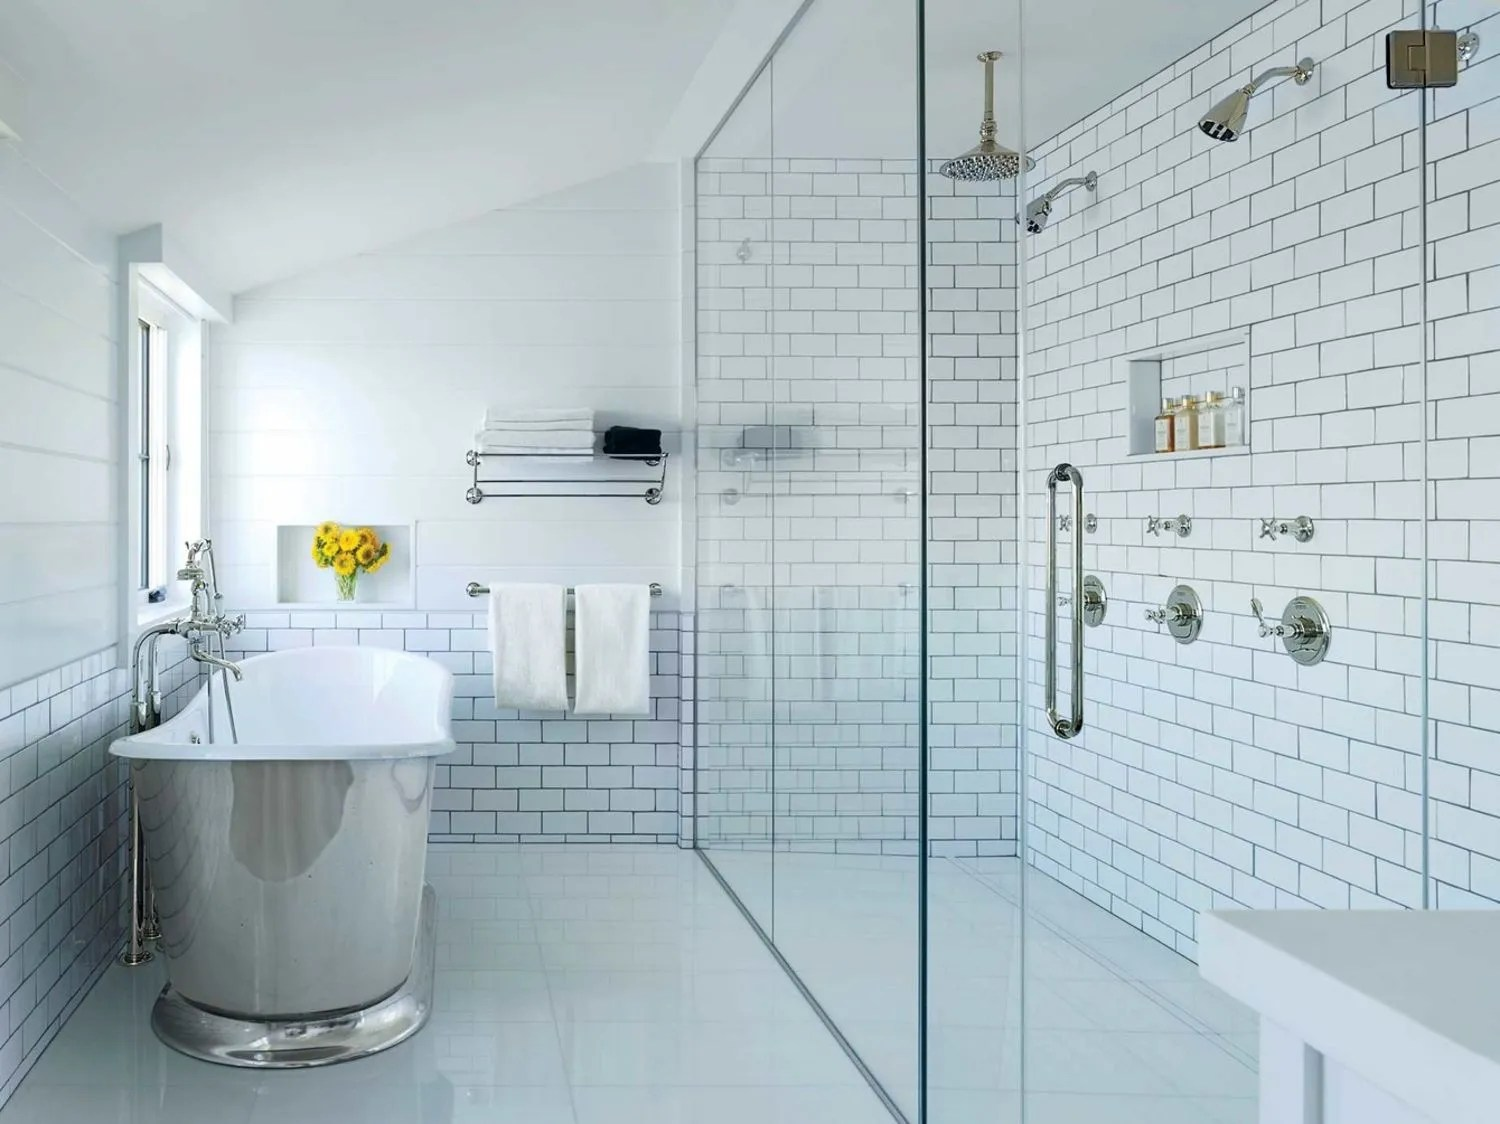 9 Space-Saving Ideas for Your Small Bathroom | Glamour on Bathroom Ideas For Small Spaces  id=71218